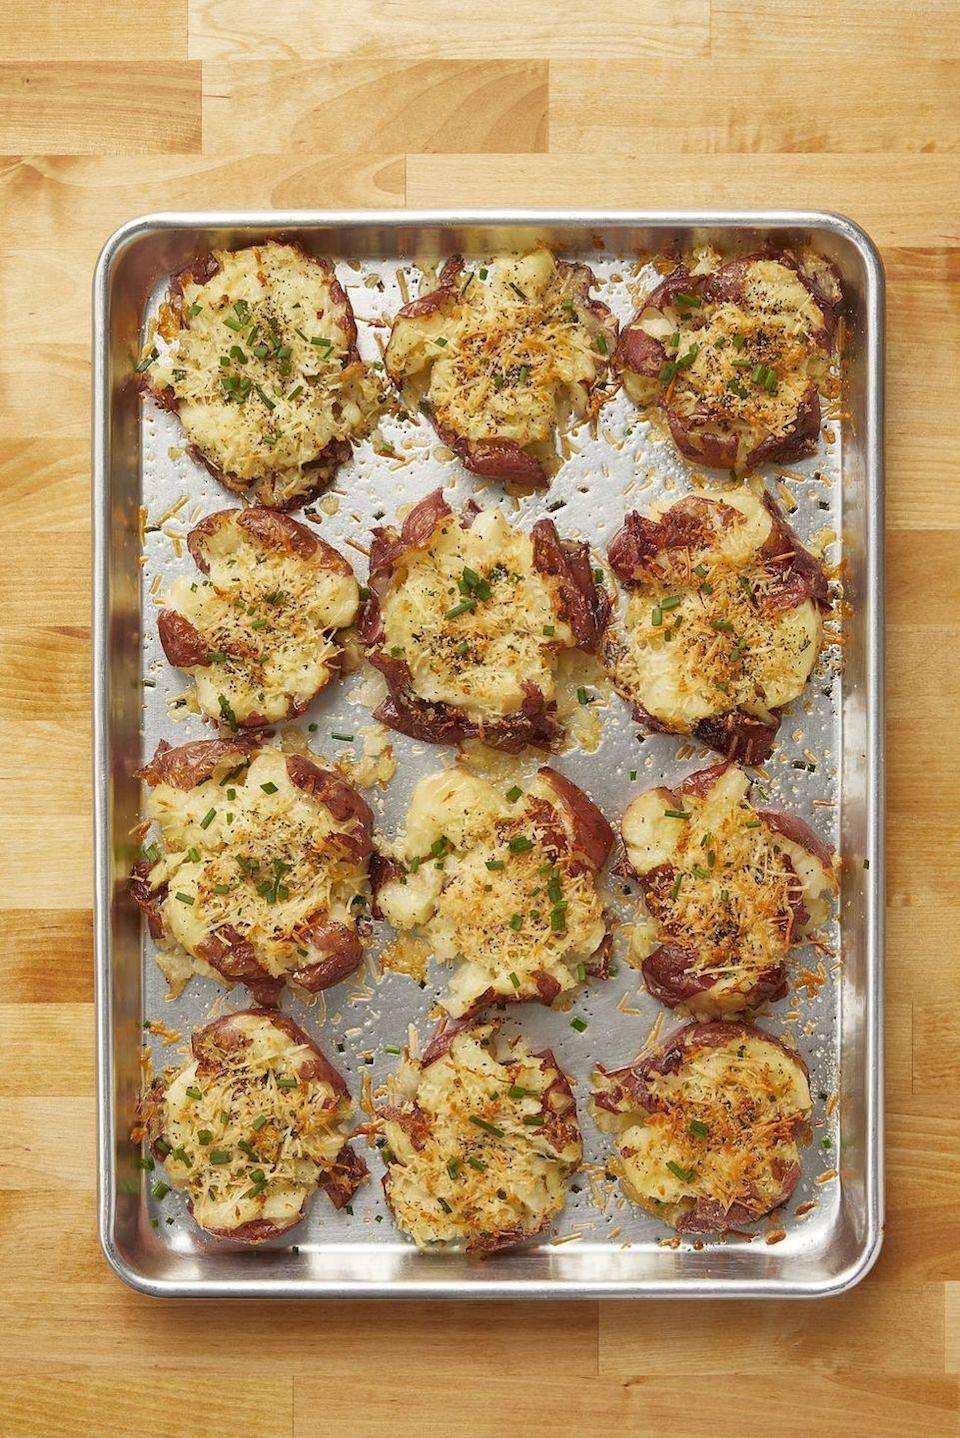 "<p>Mashed potatoes are delicious, but they've got nothing on Ree's smashed potatoes. They're fluffy, too, but with a crispy exterior as well.</p><p><strong><a href=""https://www.thepioneerwoman.com/food-cooking/recipes/a10944/crash-hot-potatoes/"" rel=""nofollow noopener"" target=""_blank"" data-ylk=""slk:Get the recipe"" class=""link rapid-noclick-resp"">Get the recipe</a>.</strong></p><p><strong><a class=""link rapid-noclick-resp"" href=""https://go.redirectingat.com?id=74968X1596630&url=https%3A%2F%2Fwww.walmart.com%2Fsearch%2F%3Fquery%3Dbaking%2Bsheets&sref=https%3A%2F%2Fwww.thepioneerwoman.com%2Ffood-cooking%2Fmeals-menus%2Fg35589850%2Fmothers-day-dinner-ideas%2F"" rel=""nofollow noopener"" target=""_blank"" data-ylk=""slk:SHOP BAKING SHEETS"">SHOP BAKING SHEETS</a></strong></p>"